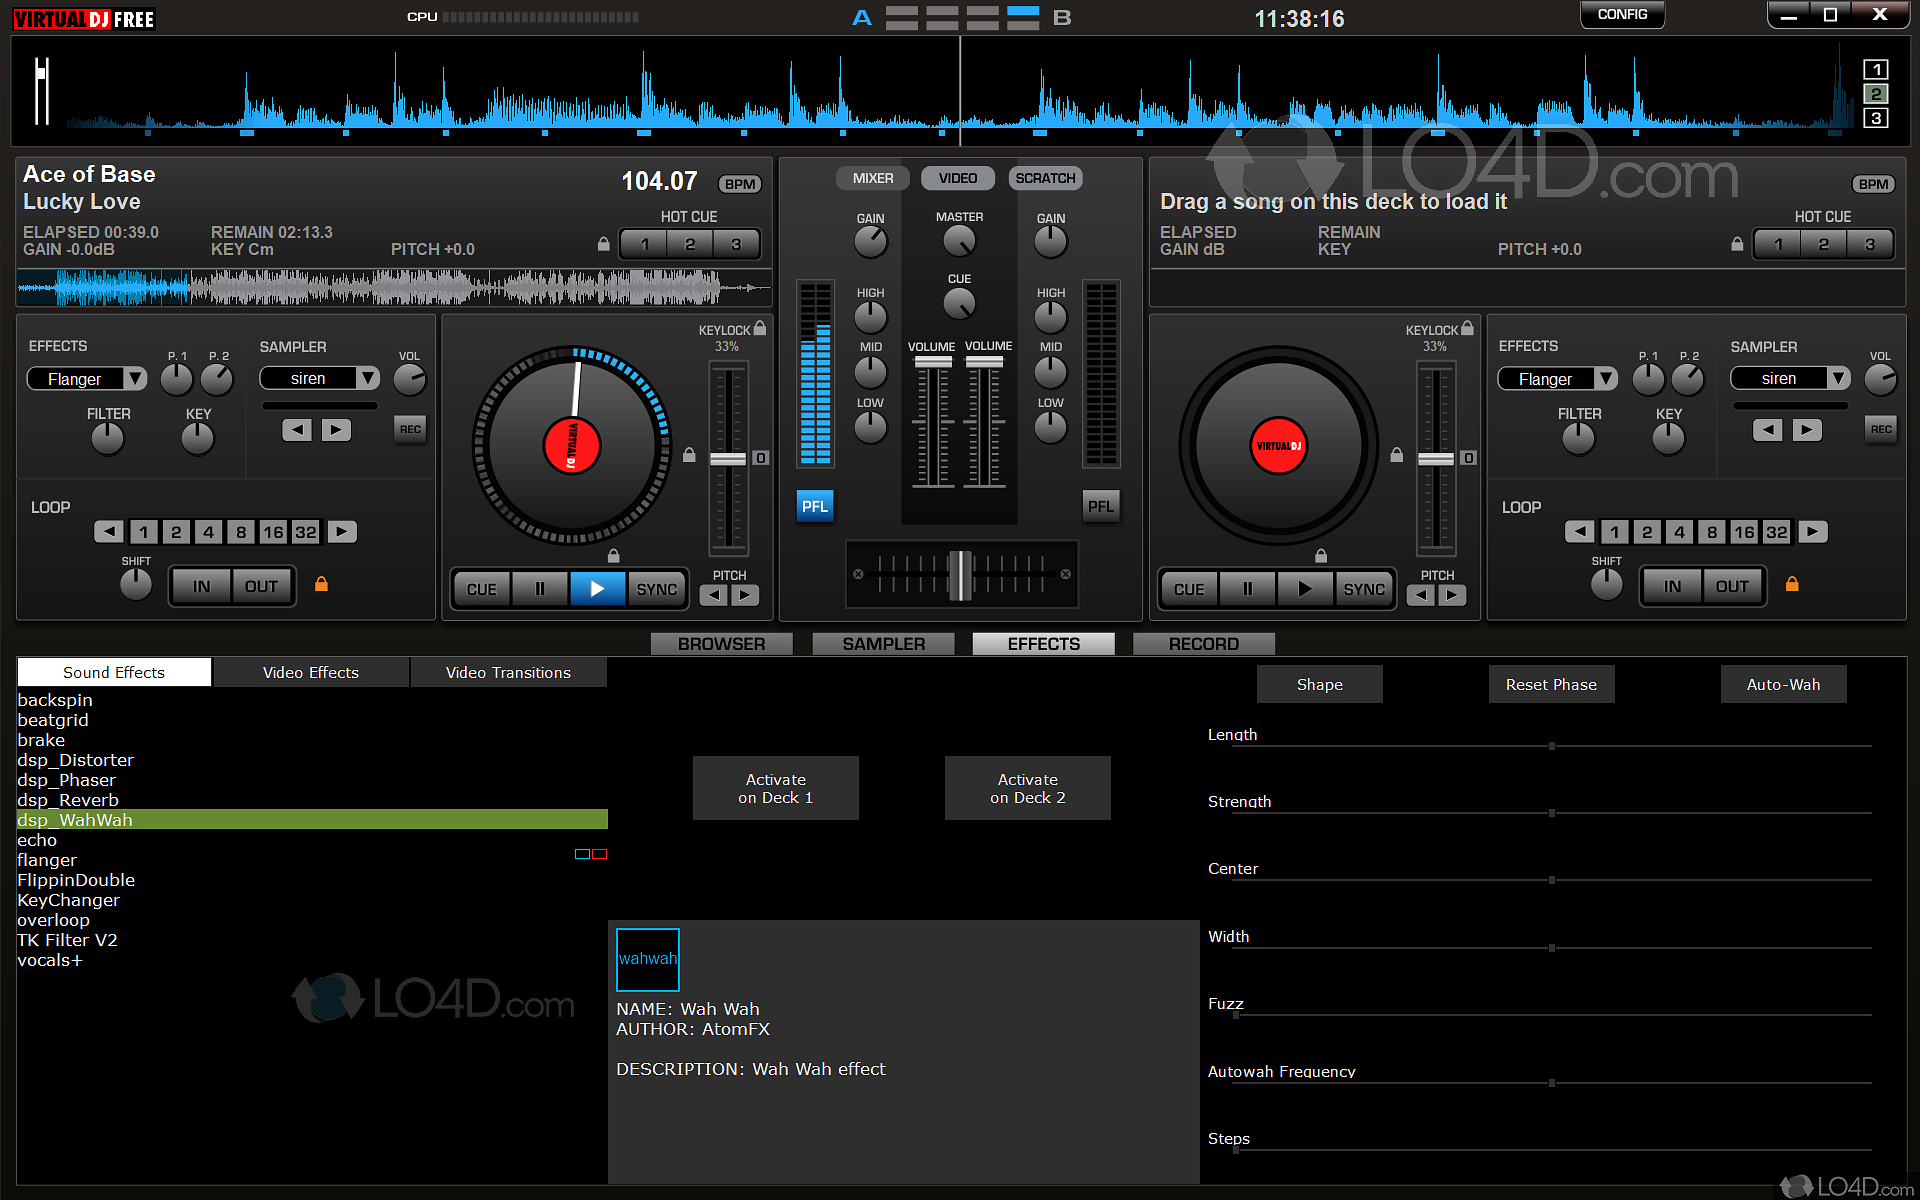 virtual dj 7.4 home edition free download